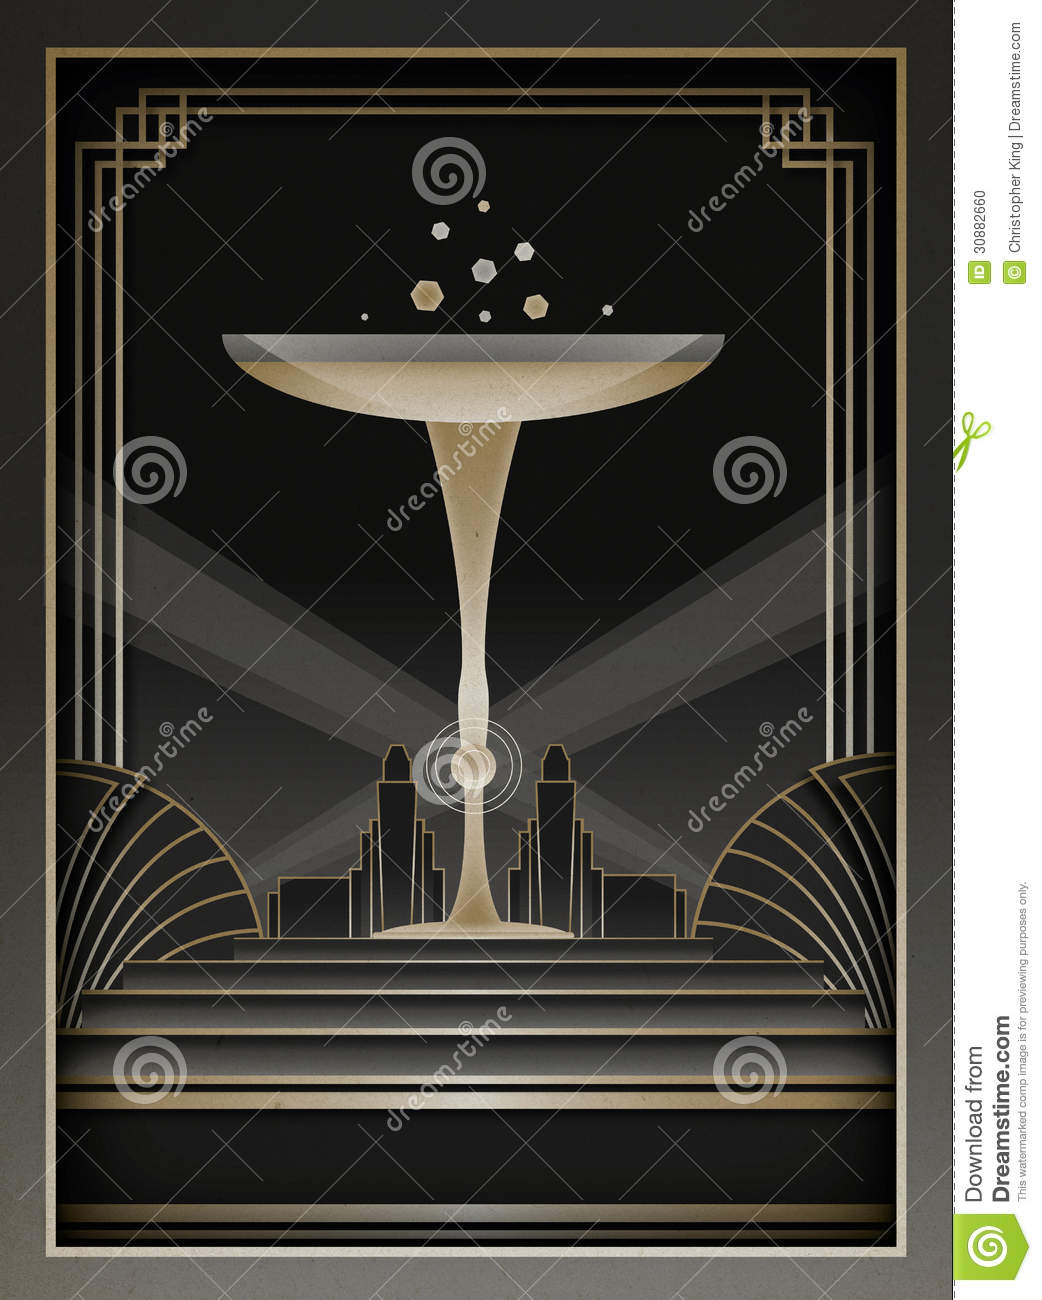 Art deco background and frame stock photo image 30882660 for Deco 5 elements